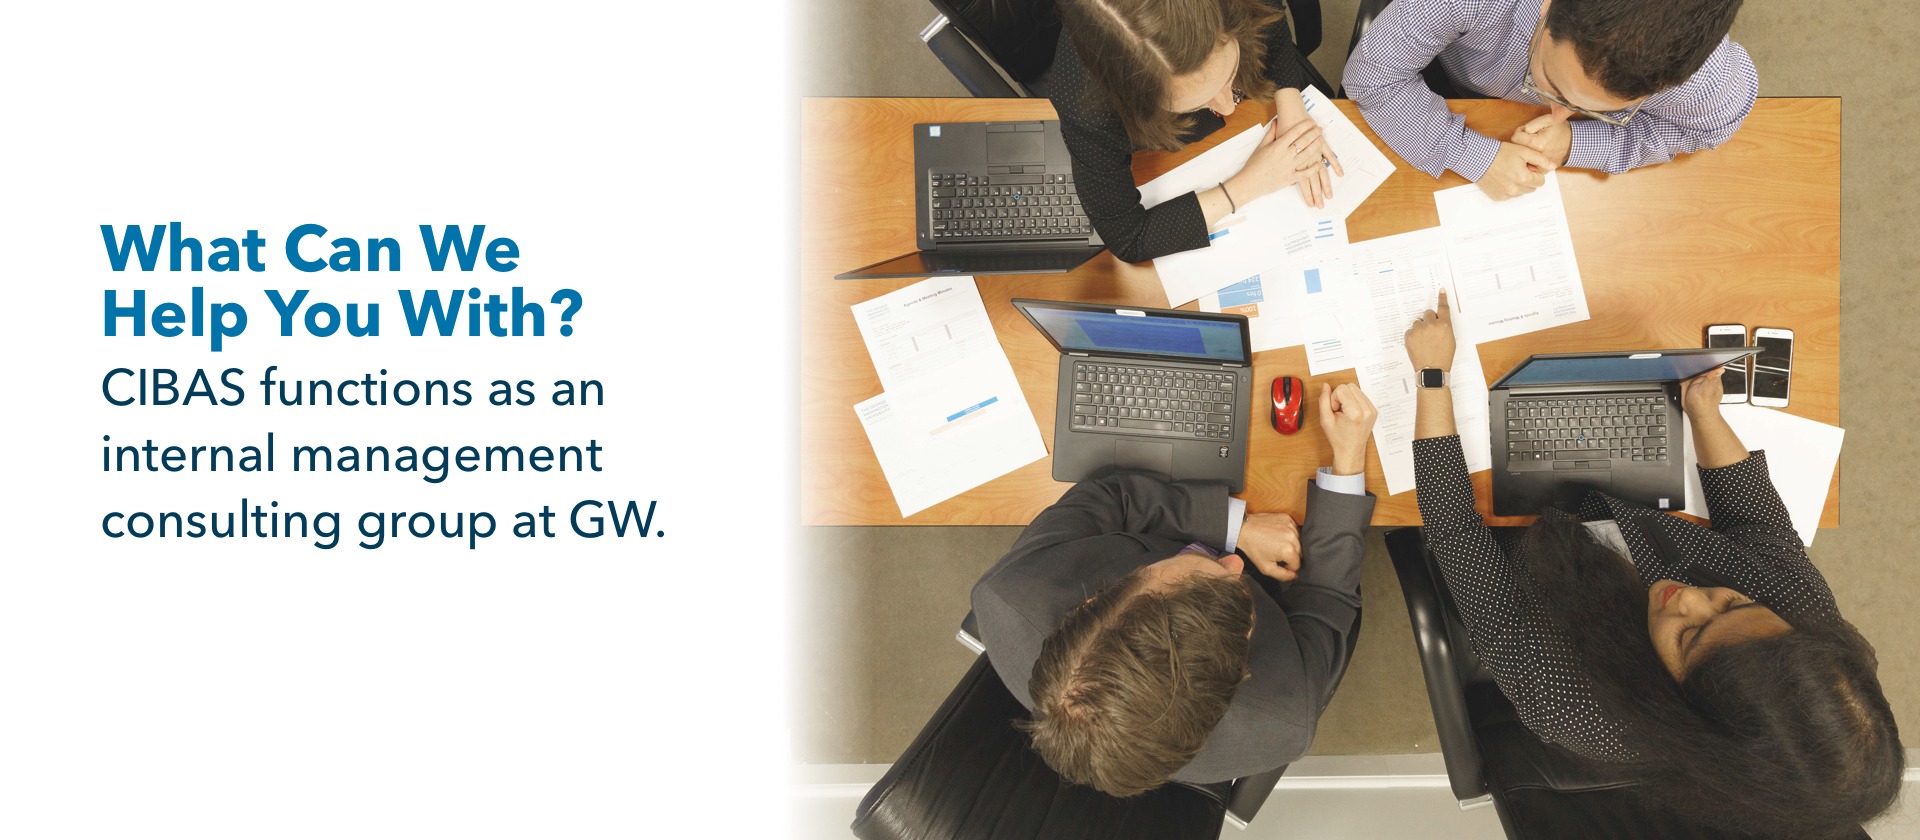 What Can We Help You With? CIBAS functions as an internal management consulting group at GW. People sitting around a work table